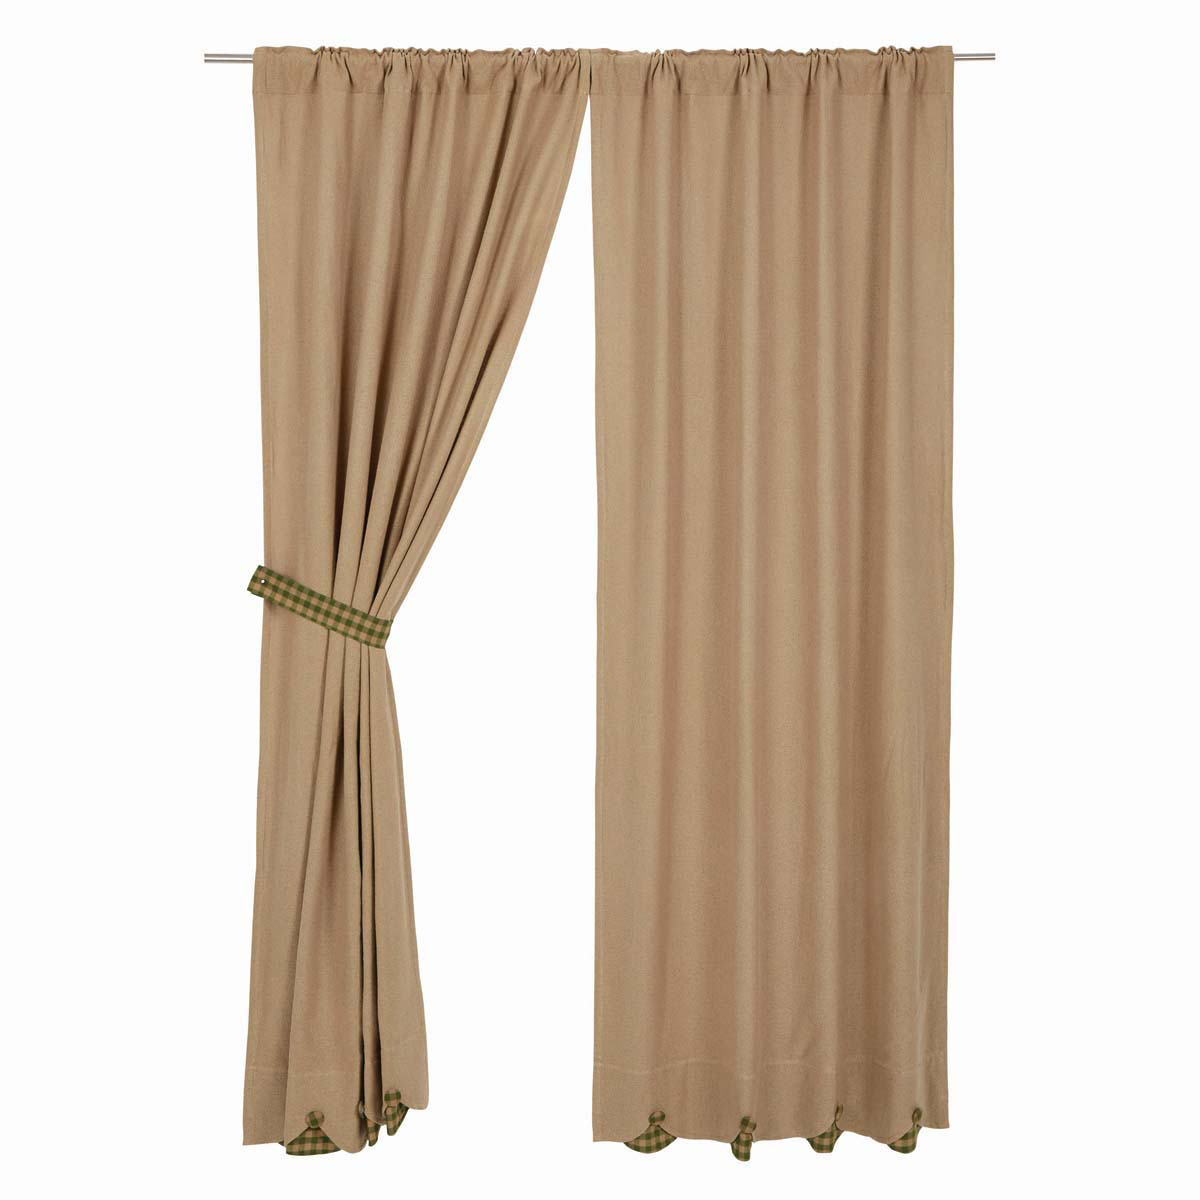 BURLAP NATURAL Long Panels w/Green Check - Set of 2 - 84x40 - Country - VHC